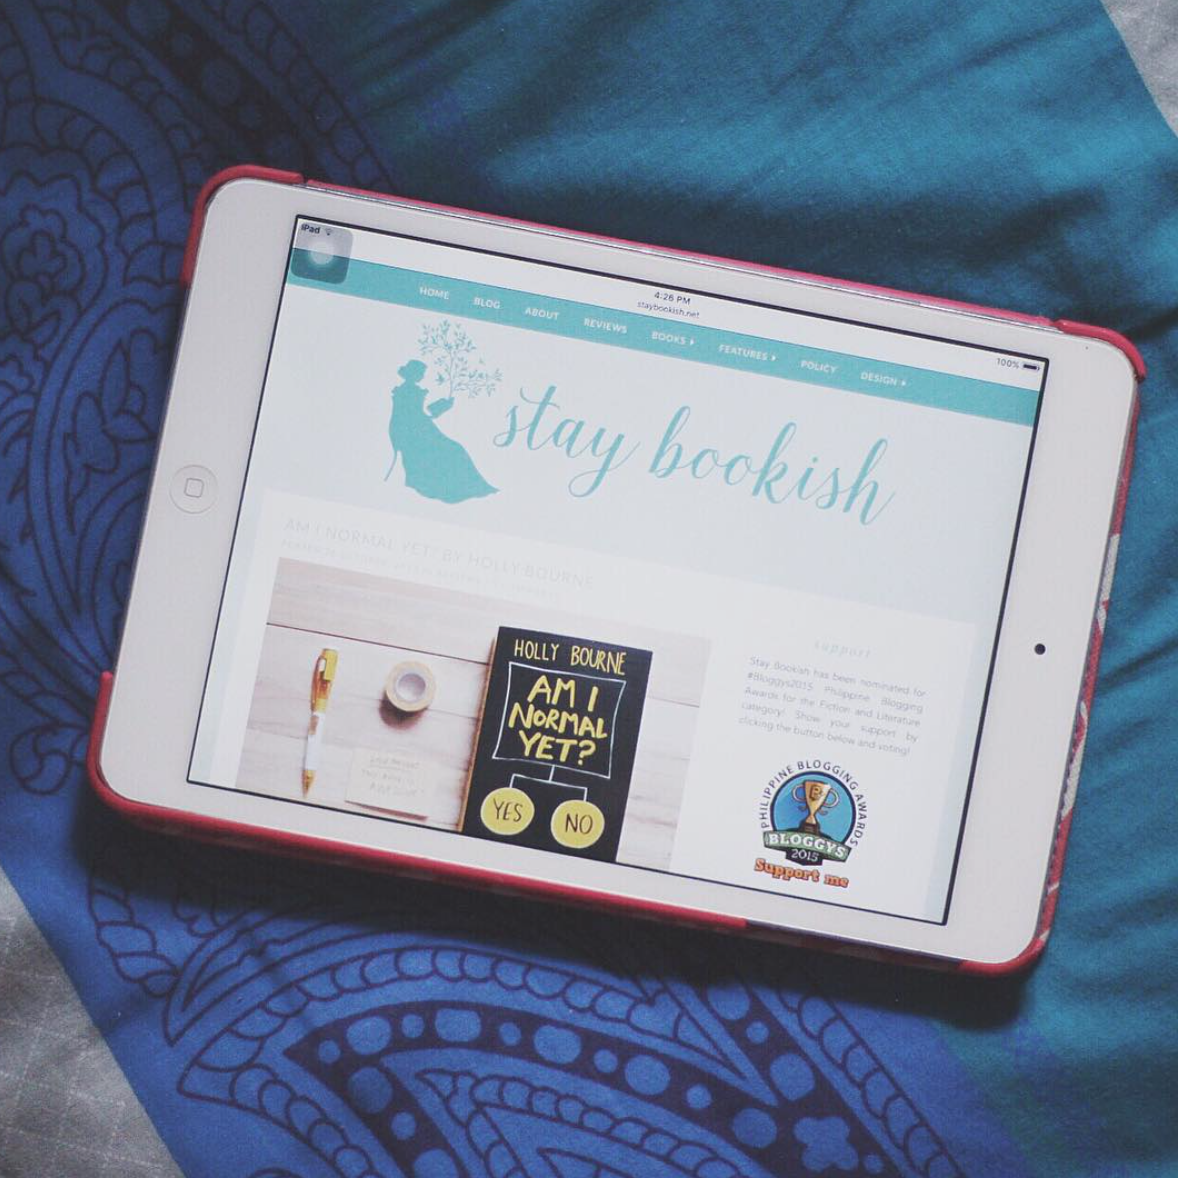 bloggys 2015 stay bookish